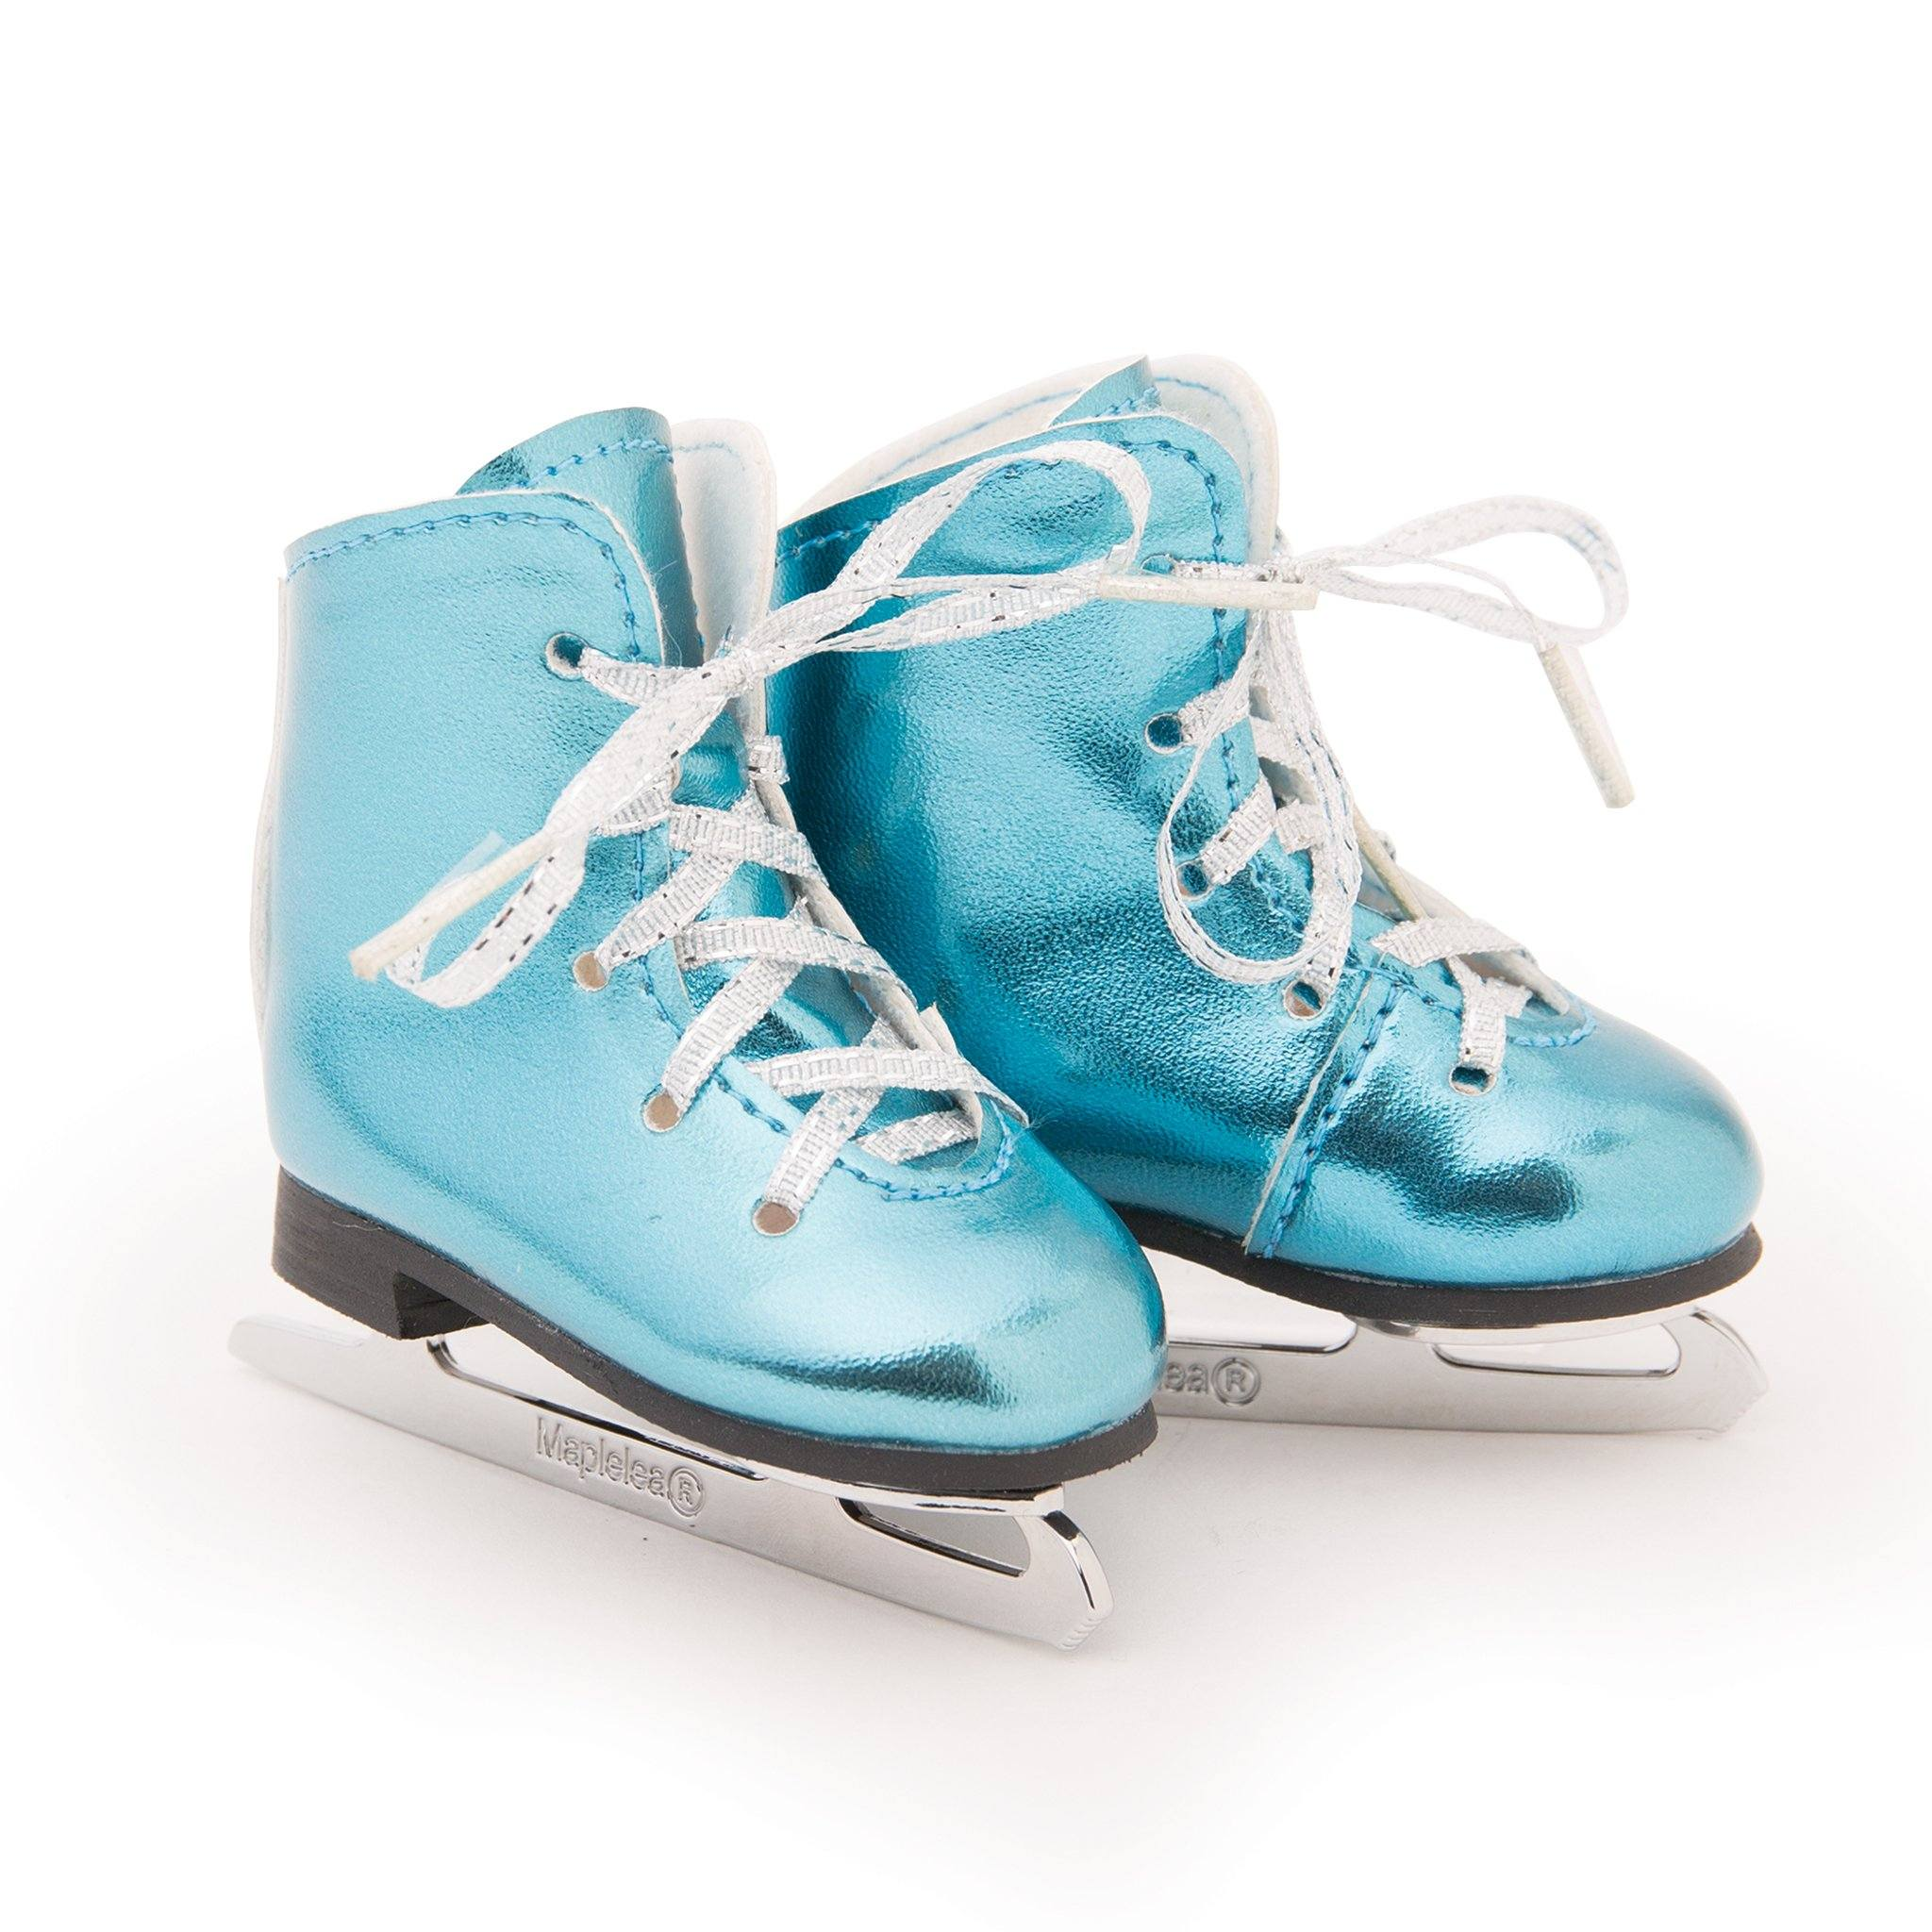 Icy cool shiny blue figure skates fits all 18 inch dolls.